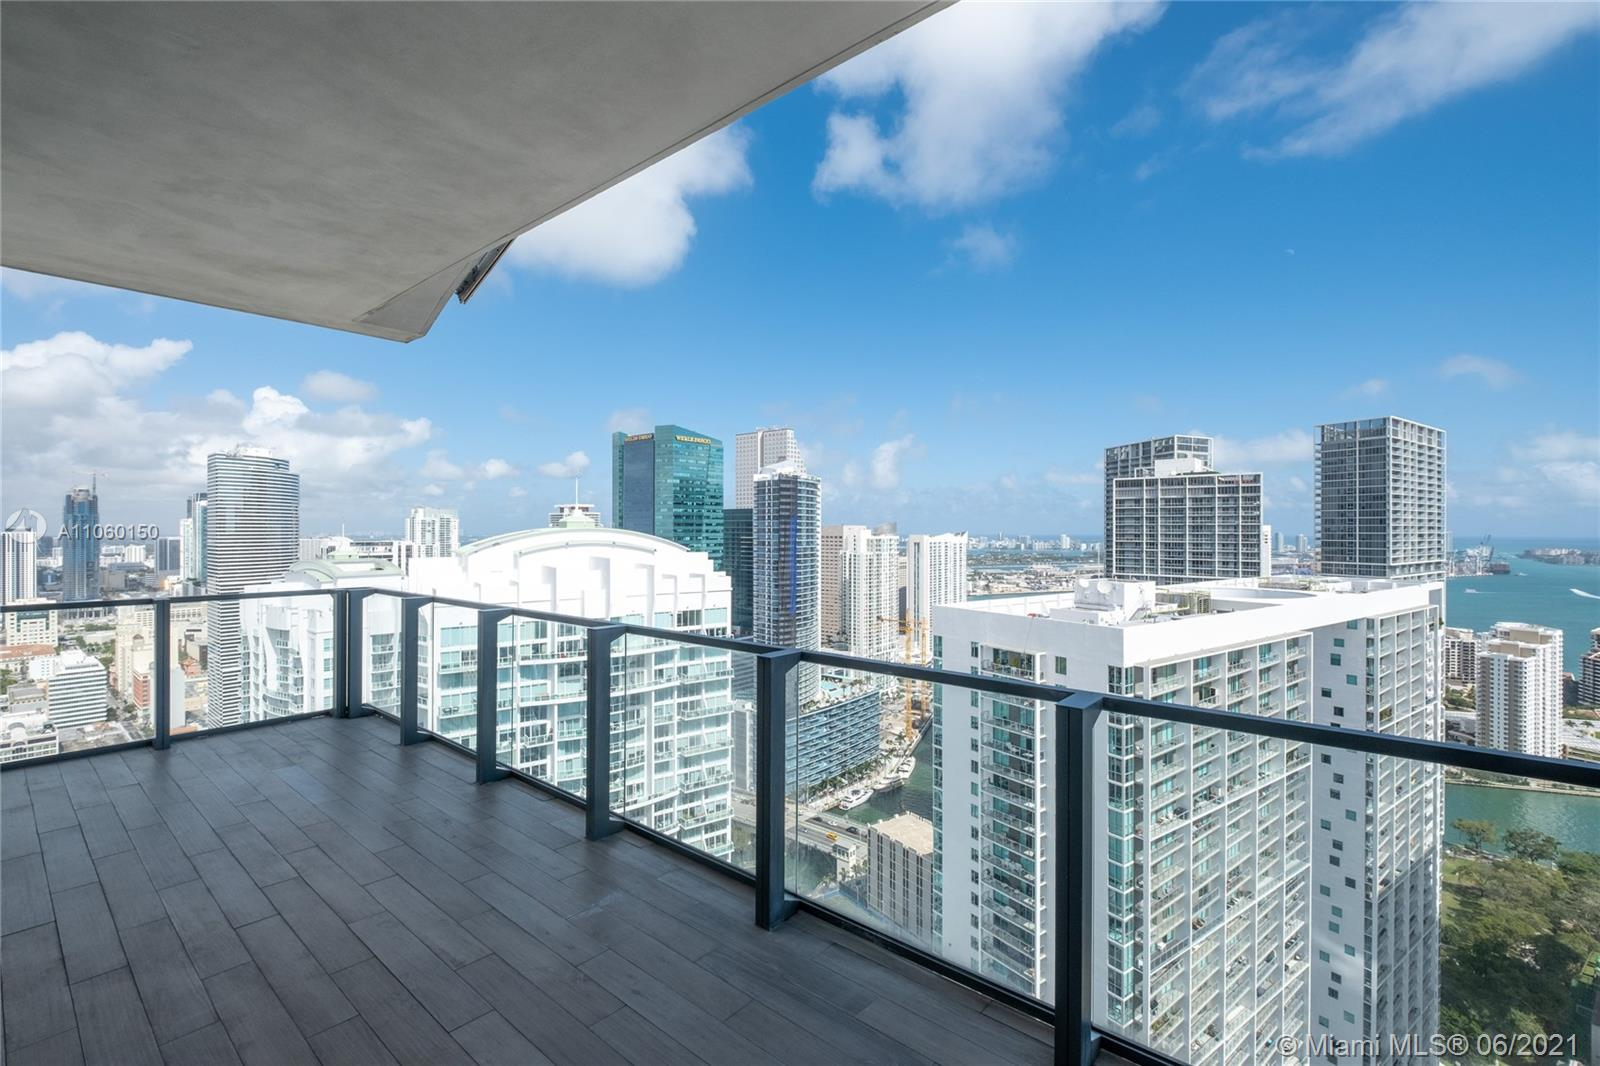 Magnificent and luxurious unit in desirable Reach at Brickell City Center. Dazzling city and water views views, Floor-to-ceiling sliding glass doors, modern Italian kitchen cabinets with cooking island, quartz stone counter top, Bosch appliances, gorgeous marble floors, oversize built in closet and electric shades. Enjoy half-acre amenity deck including tropical gardens, barbecue grills, outdoor fitness areas, kids playground, heated lap and social pools with spa, fitness center & more.